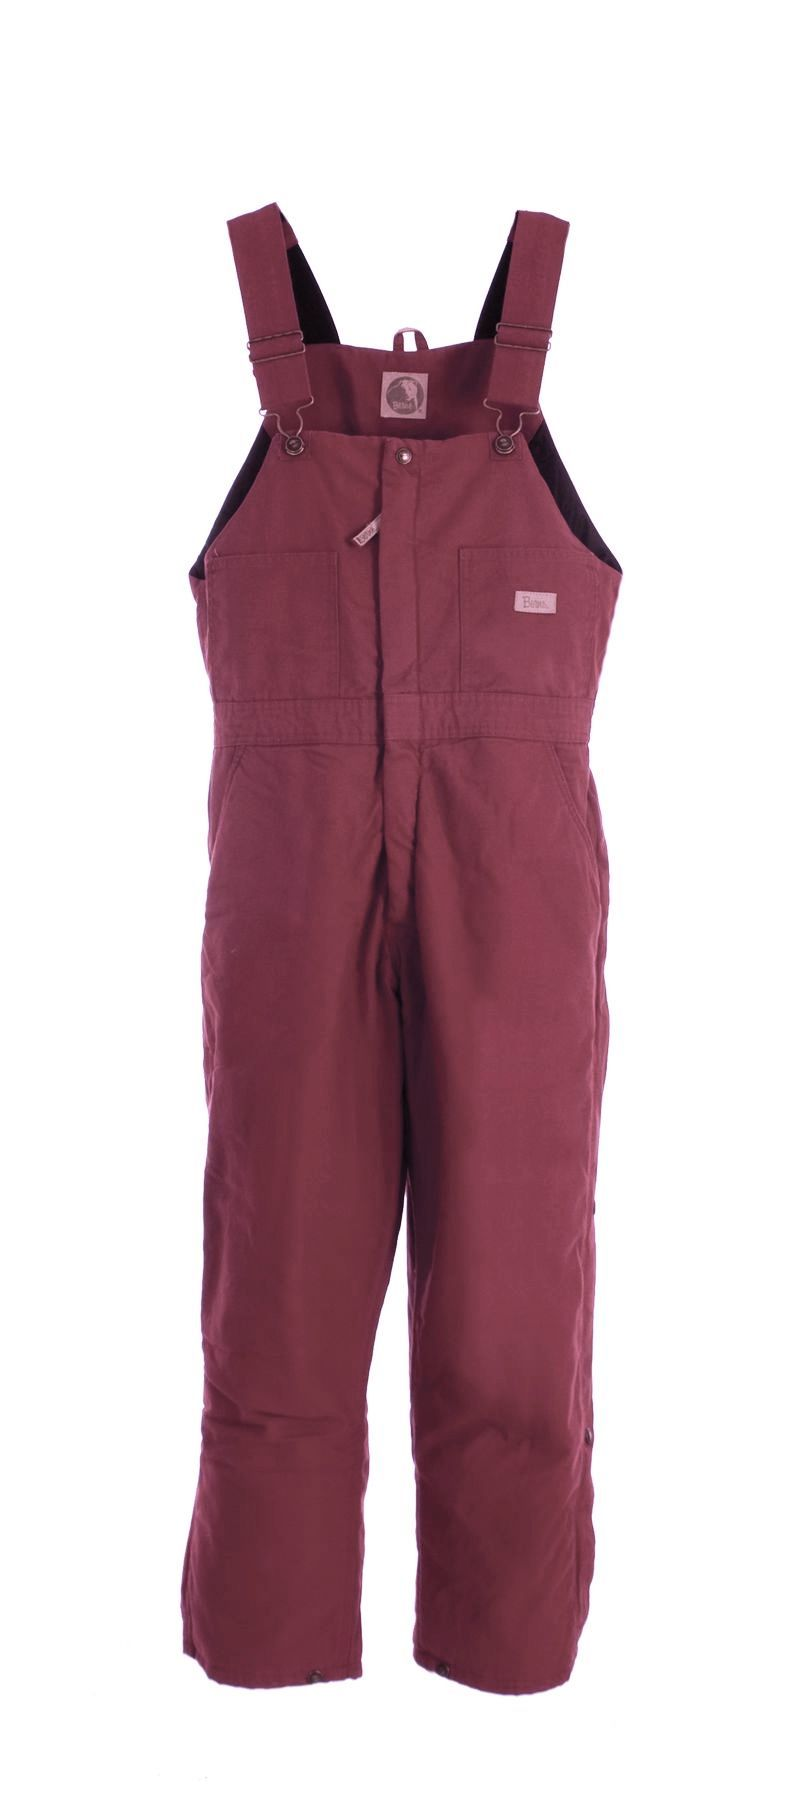 67 50 wb515 berne ladies washed insulated bib overalls on womens insulated bib overalls id=50685